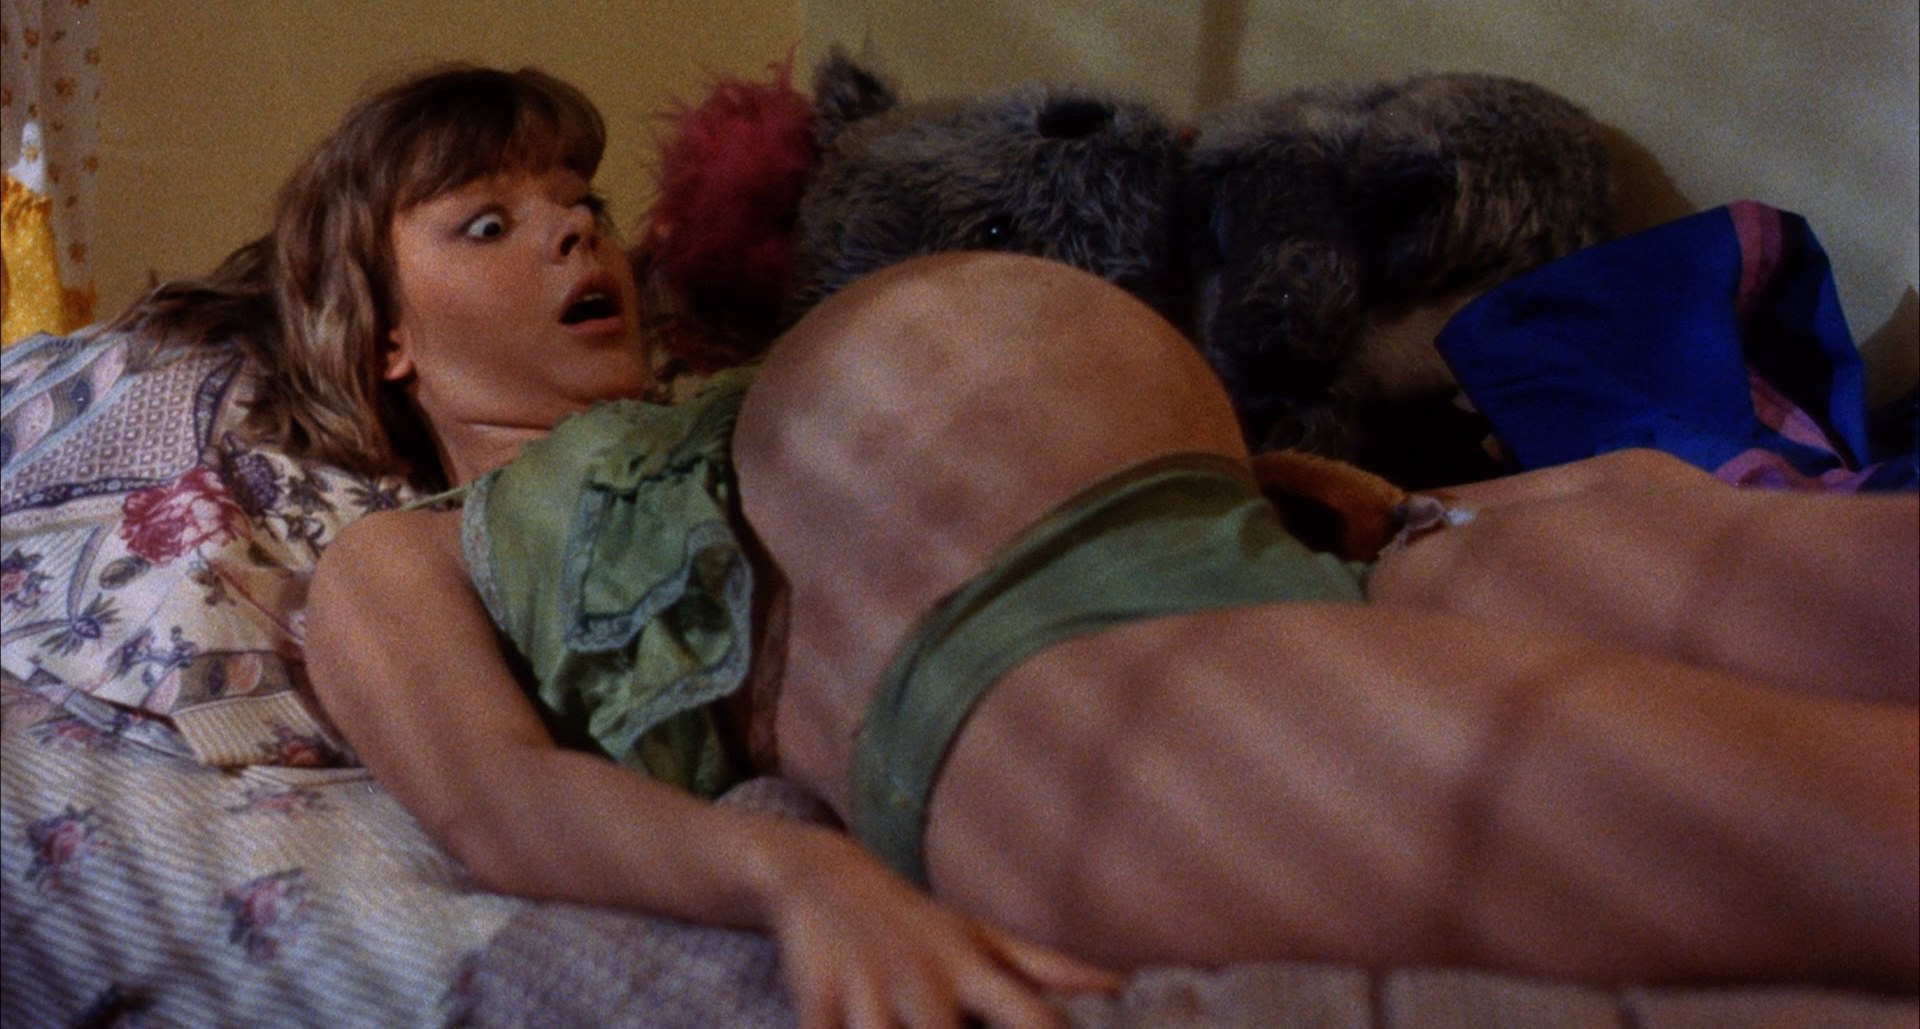 Janelle Brady gets pregnant with a mutation in Class of Nuke 'Em High (1986)